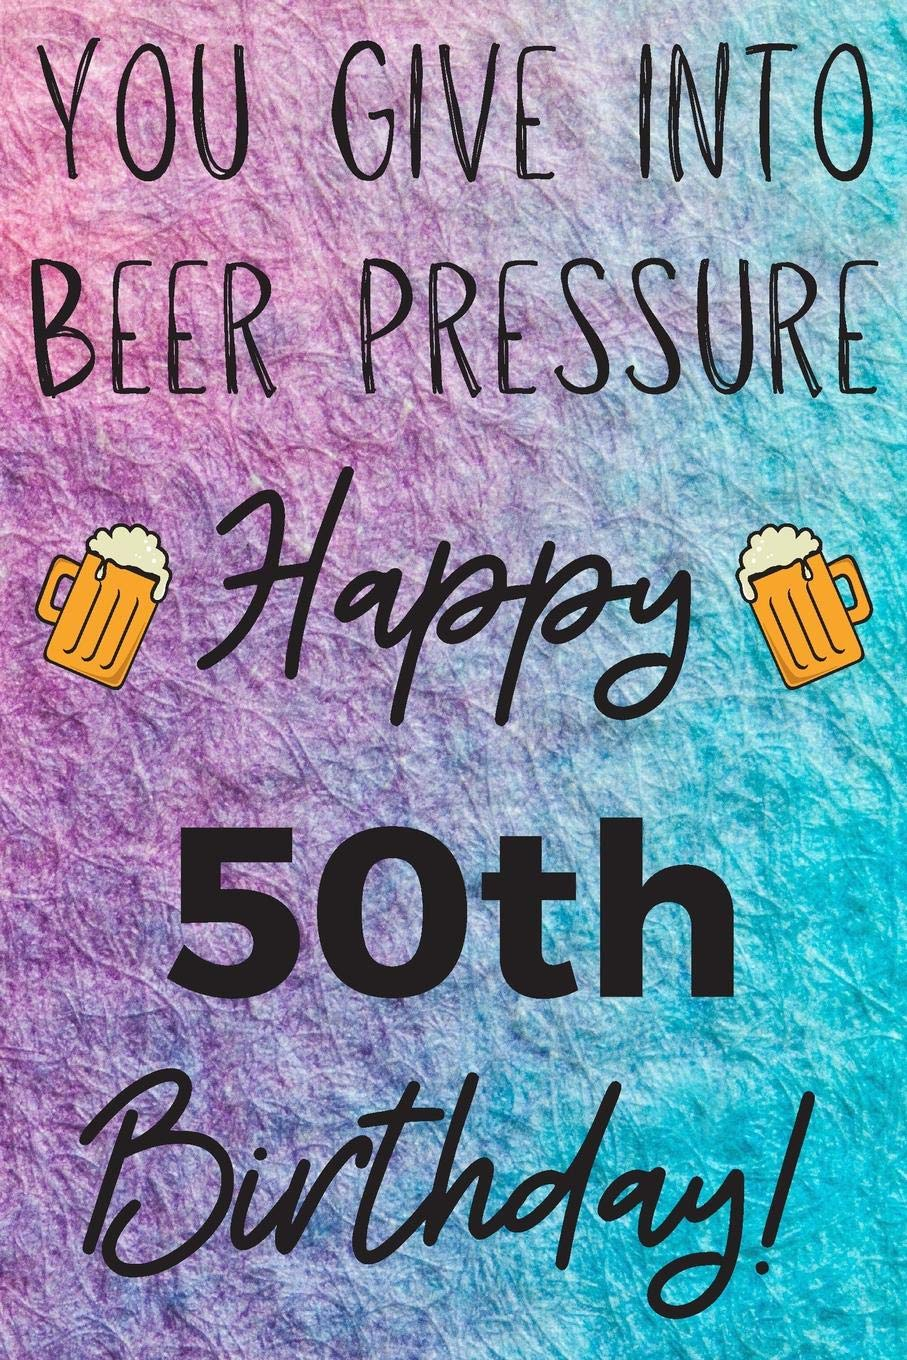 You Give Into Beer Pressure Happy 50th Birthday: Funny 50th ...